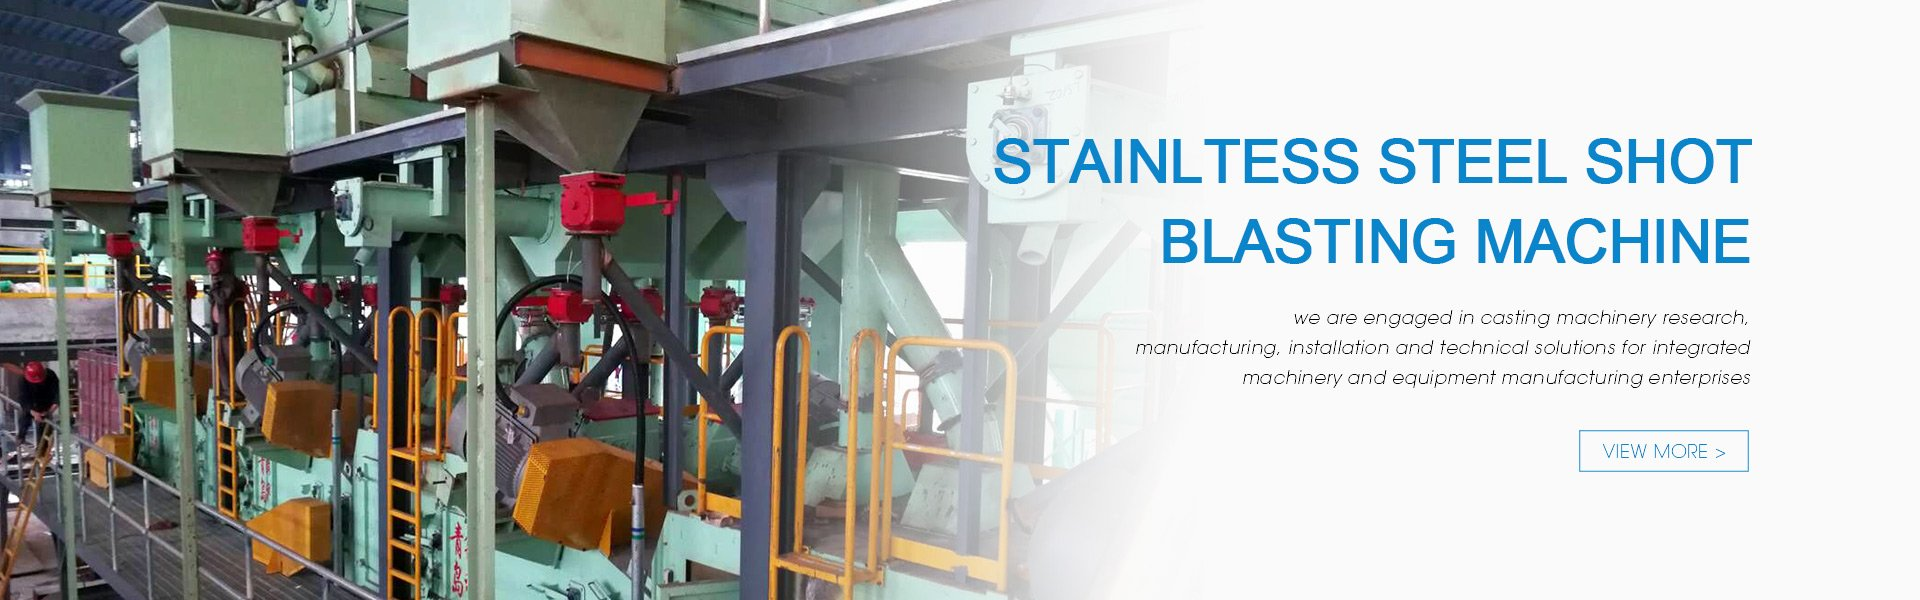 stainless steel shot blasting machine